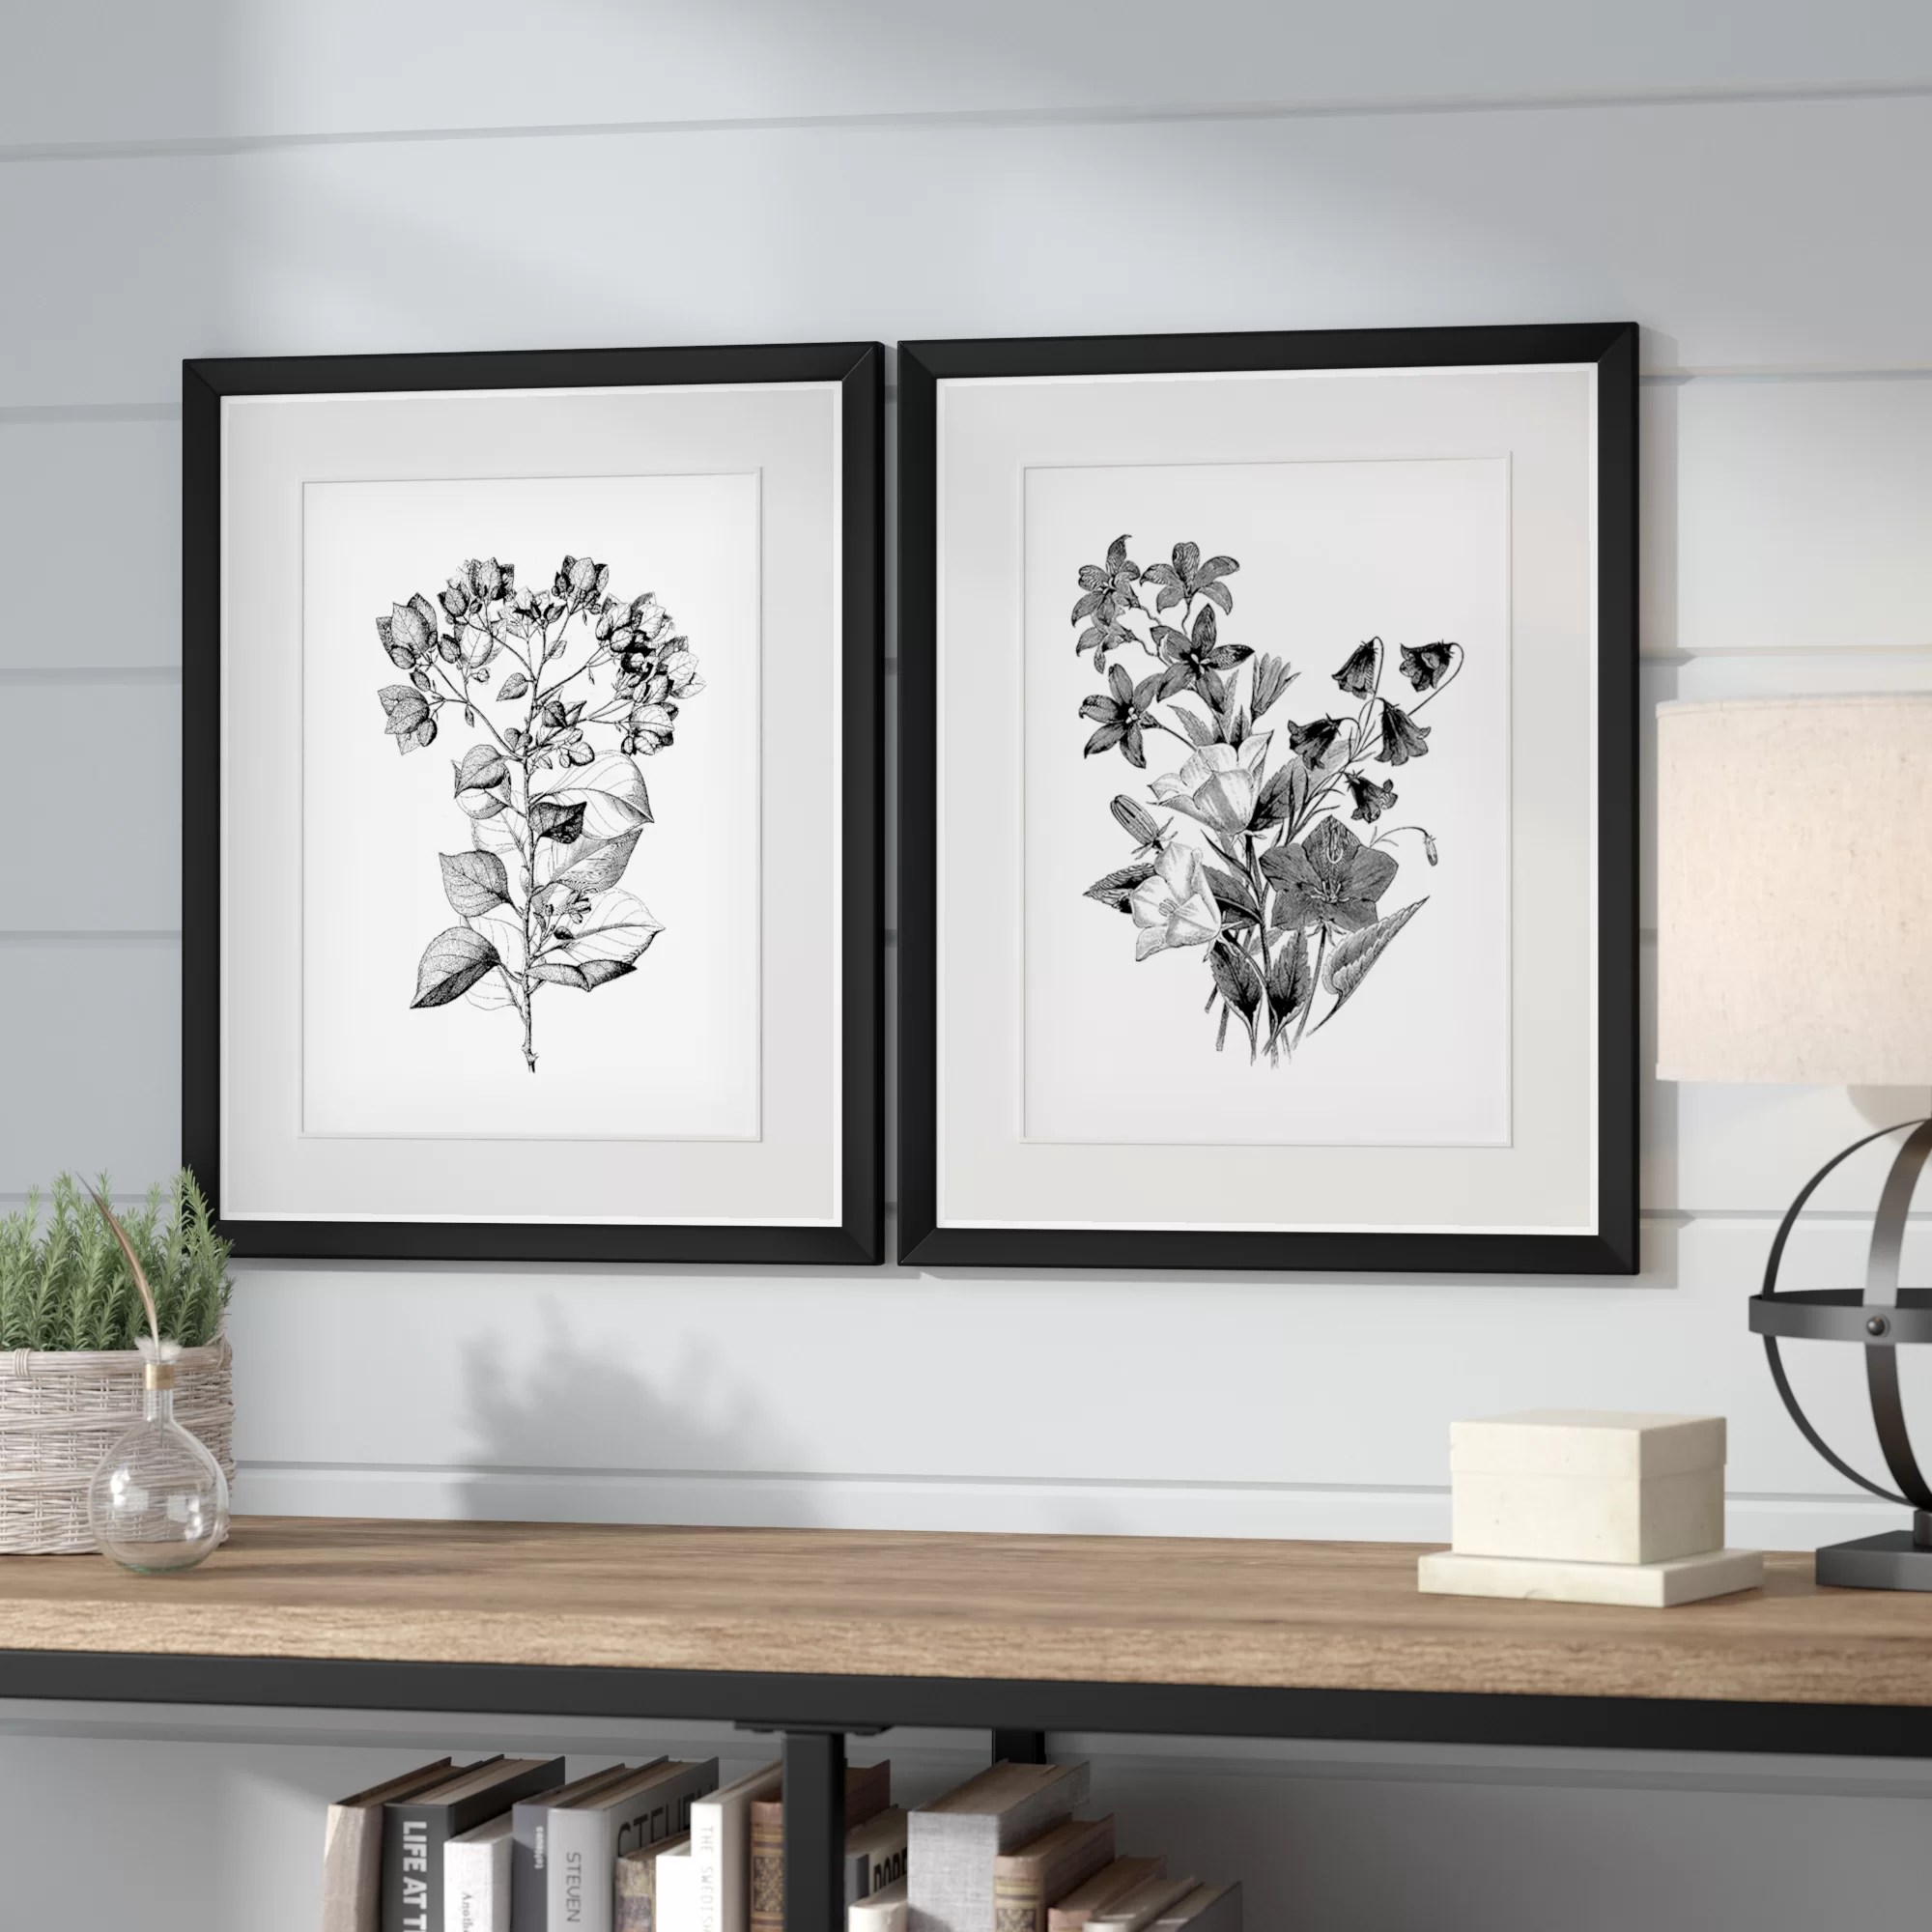 Ophelia Co Botanical Black And White 2 Piece Framed Acrylic Painting Print Set Reviews Wayfair